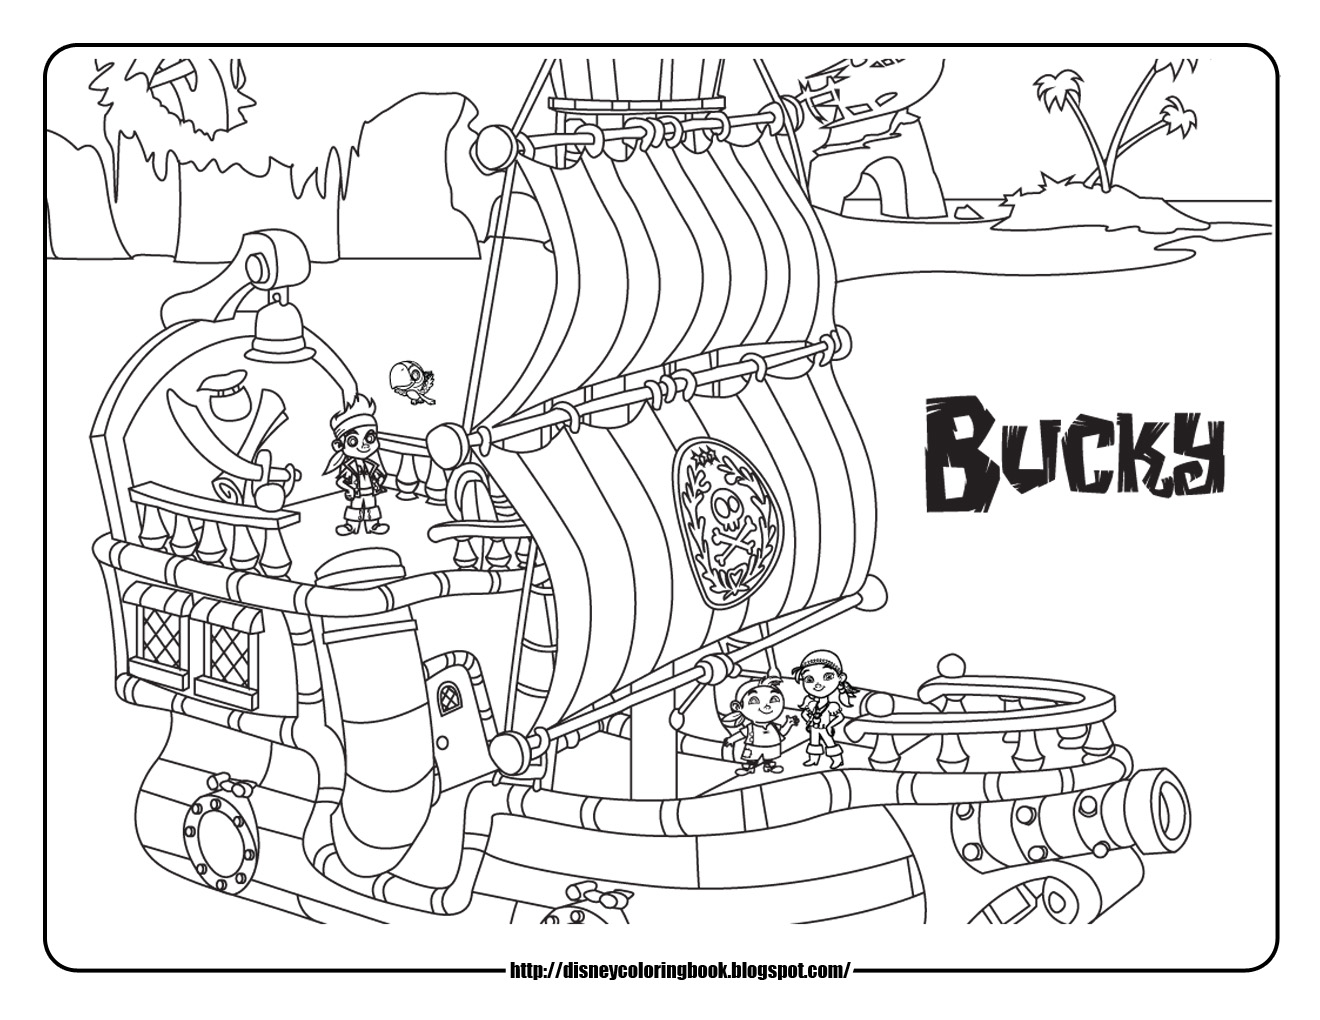 Jake and the neverland pirates 2 free disney coloring for Pirate coloring book pages